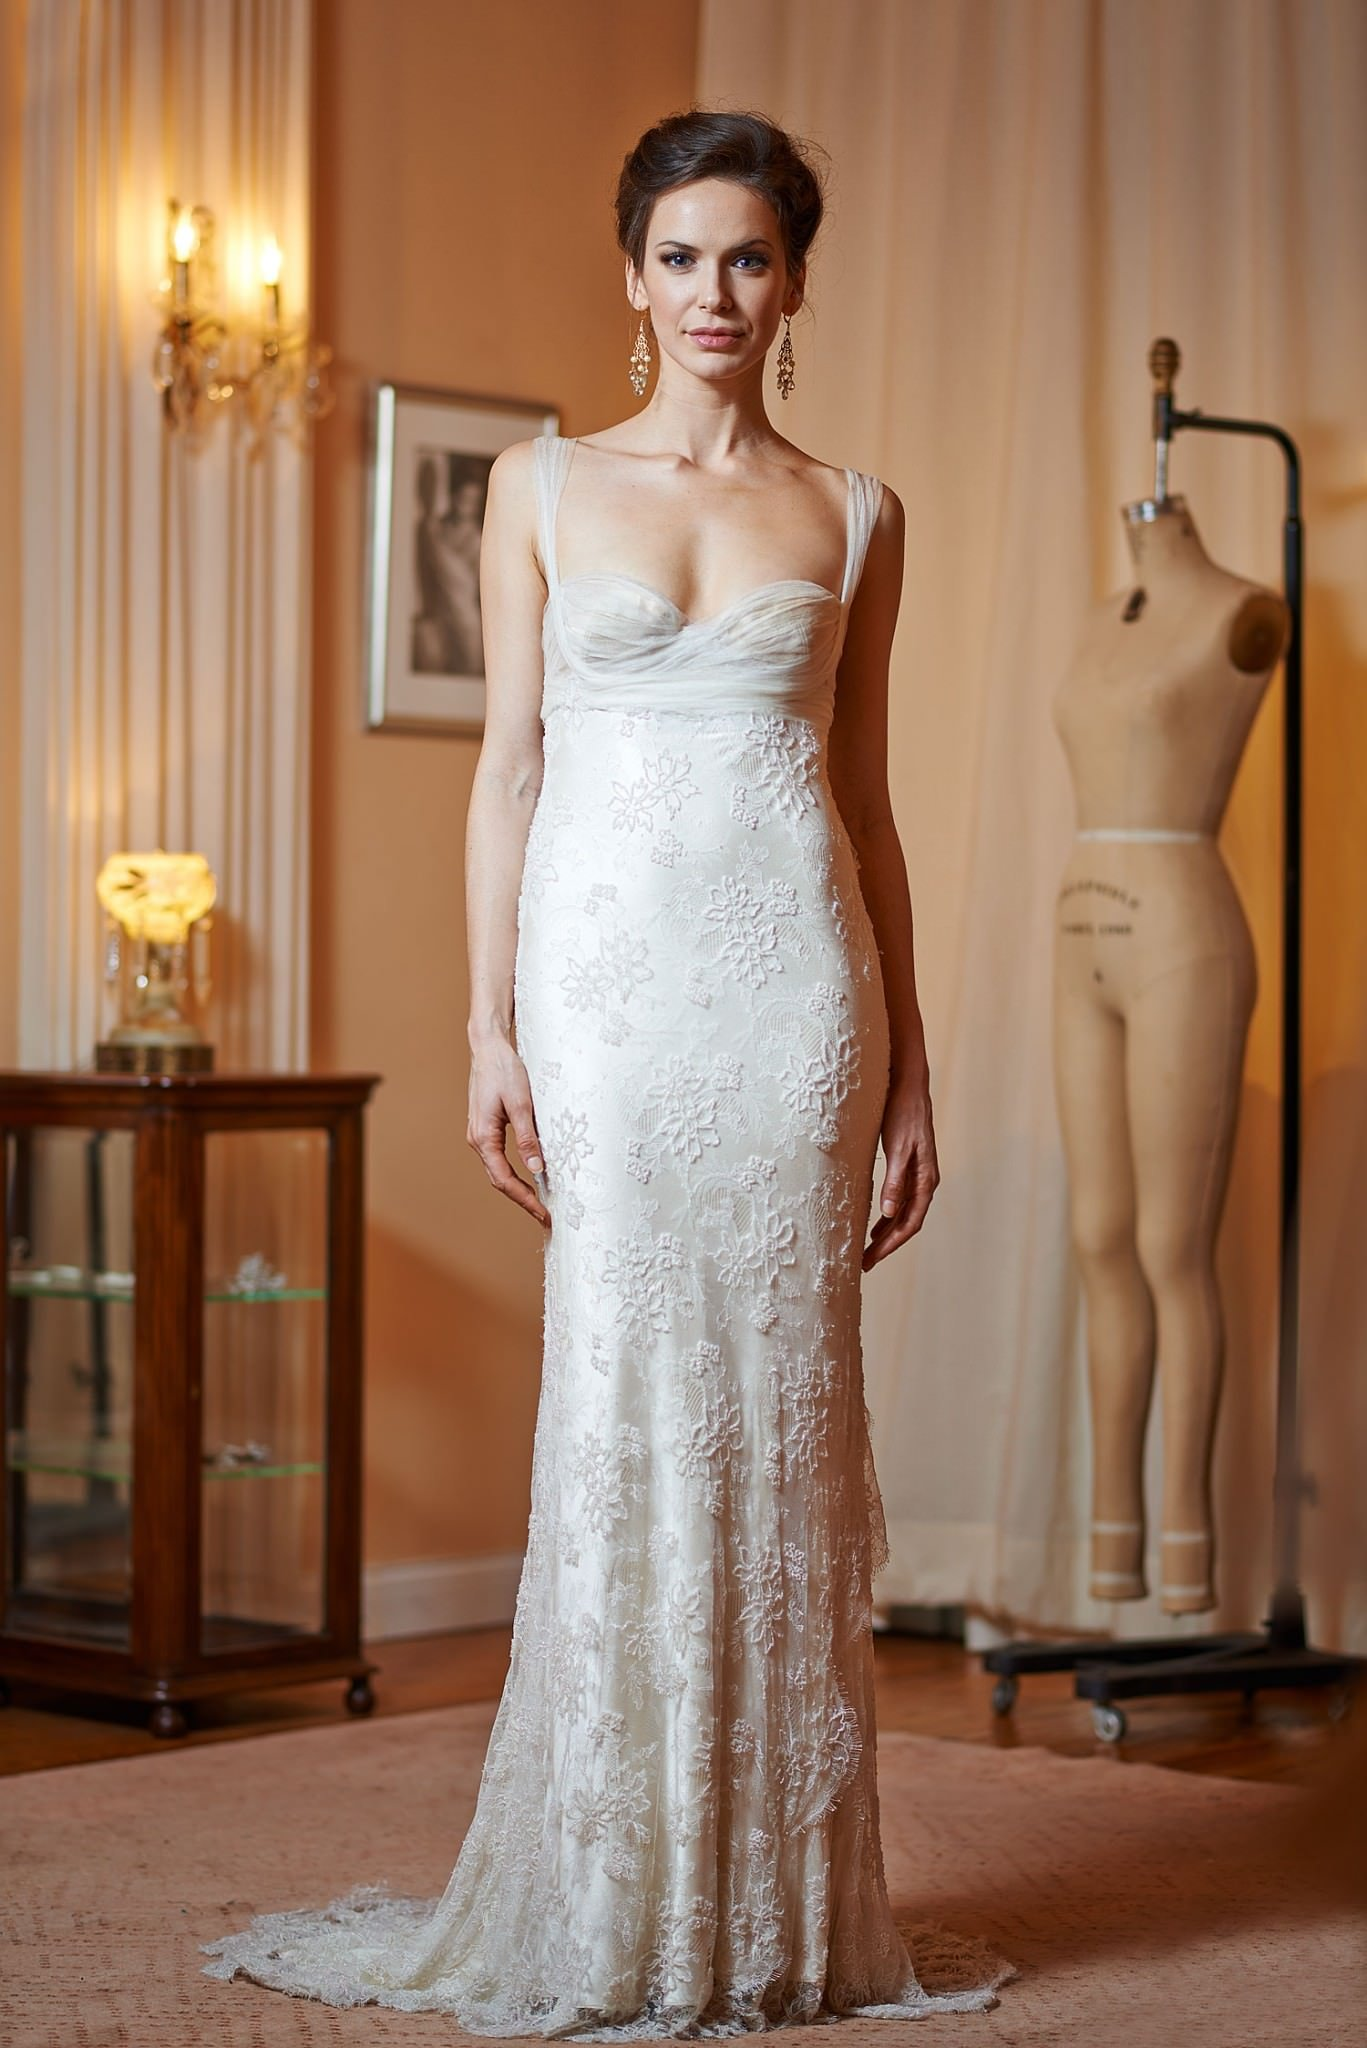 Janice Martin Couture: Bridal Gowns & One-of-a-Kind Wedding Dresses ...